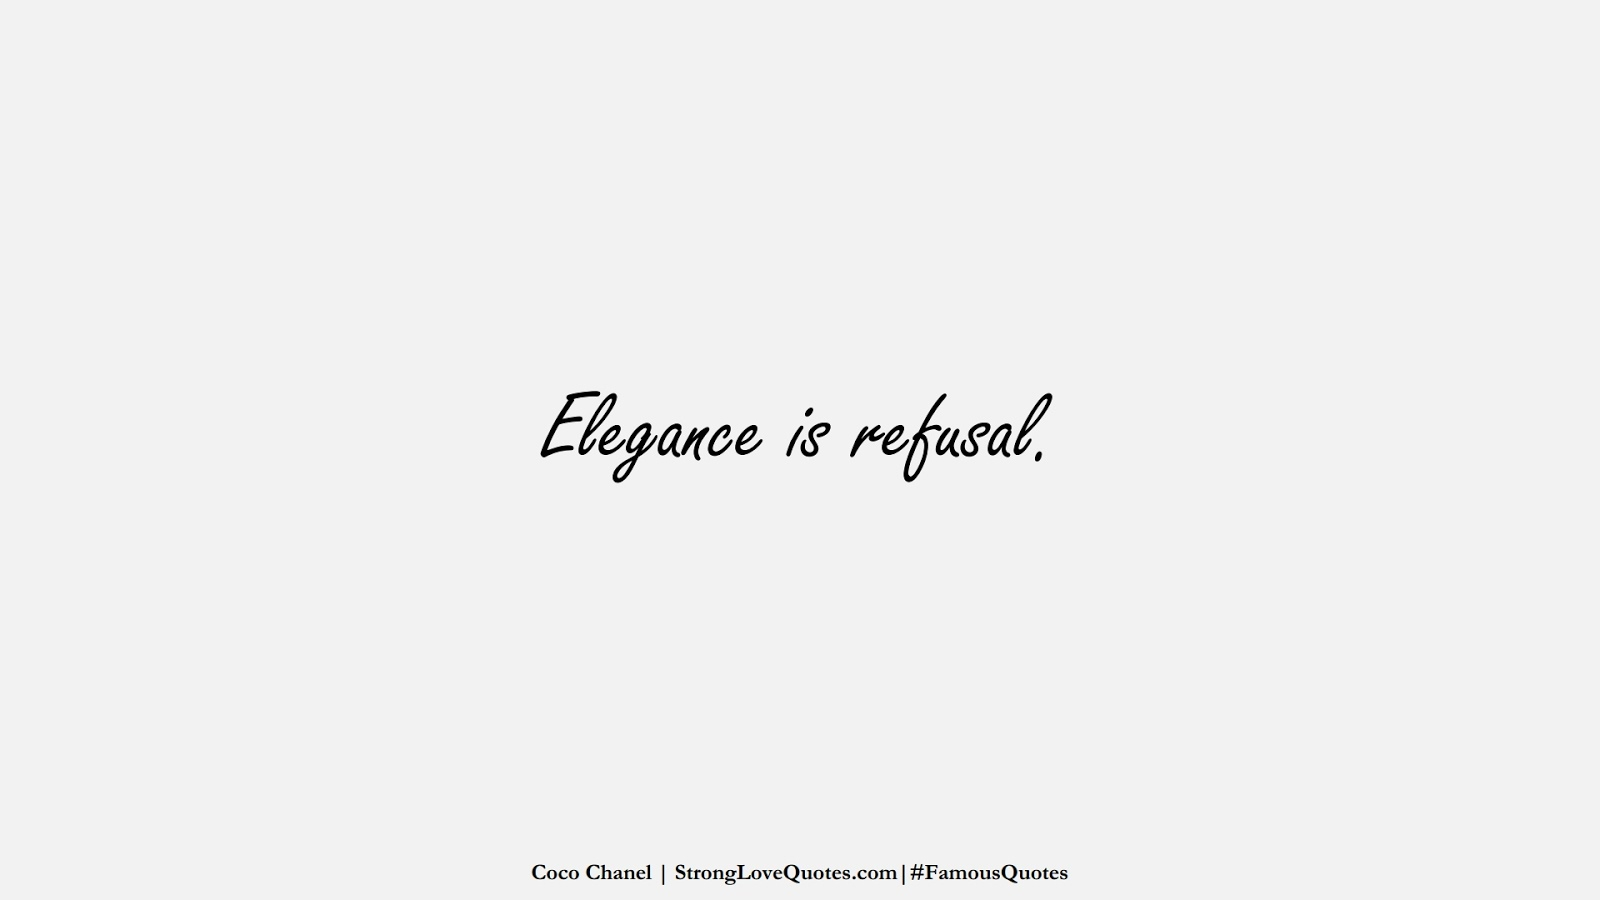 Elegance is refusal. (Coco Chanel);  #FamousQuotes